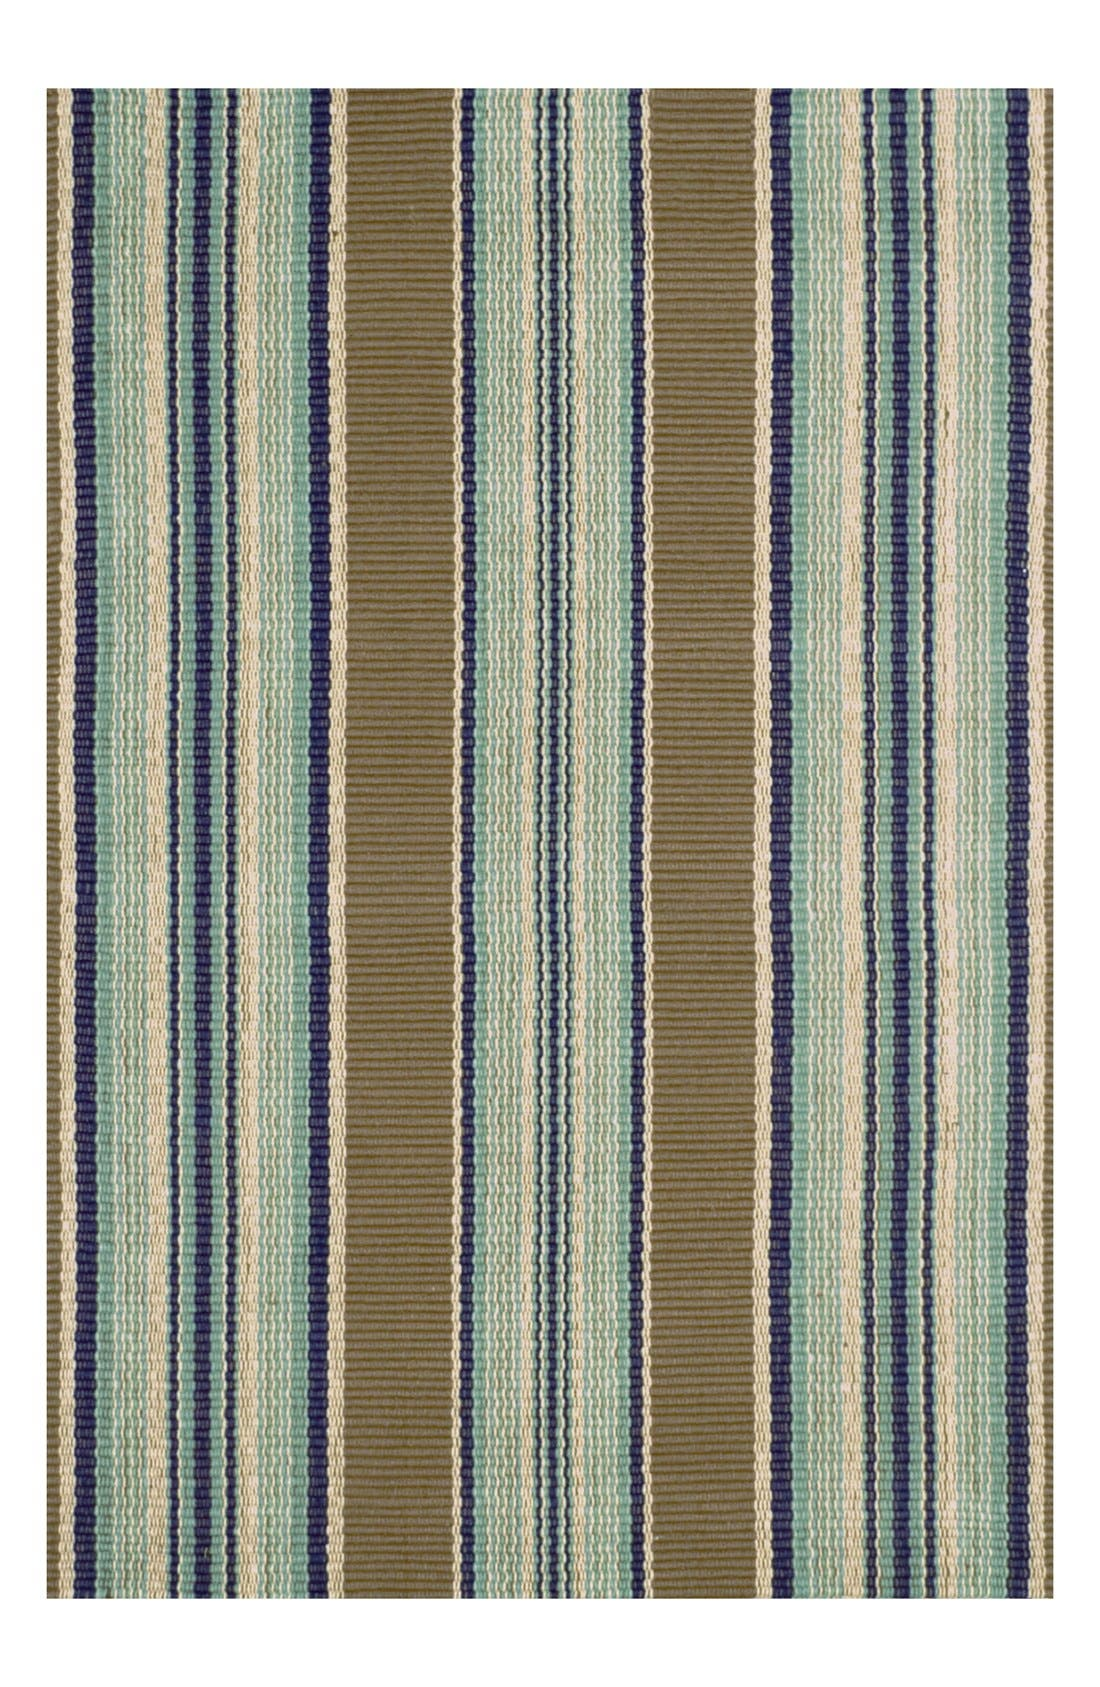 DASH & ALBERT 'Blue Heron' Stripe Rug